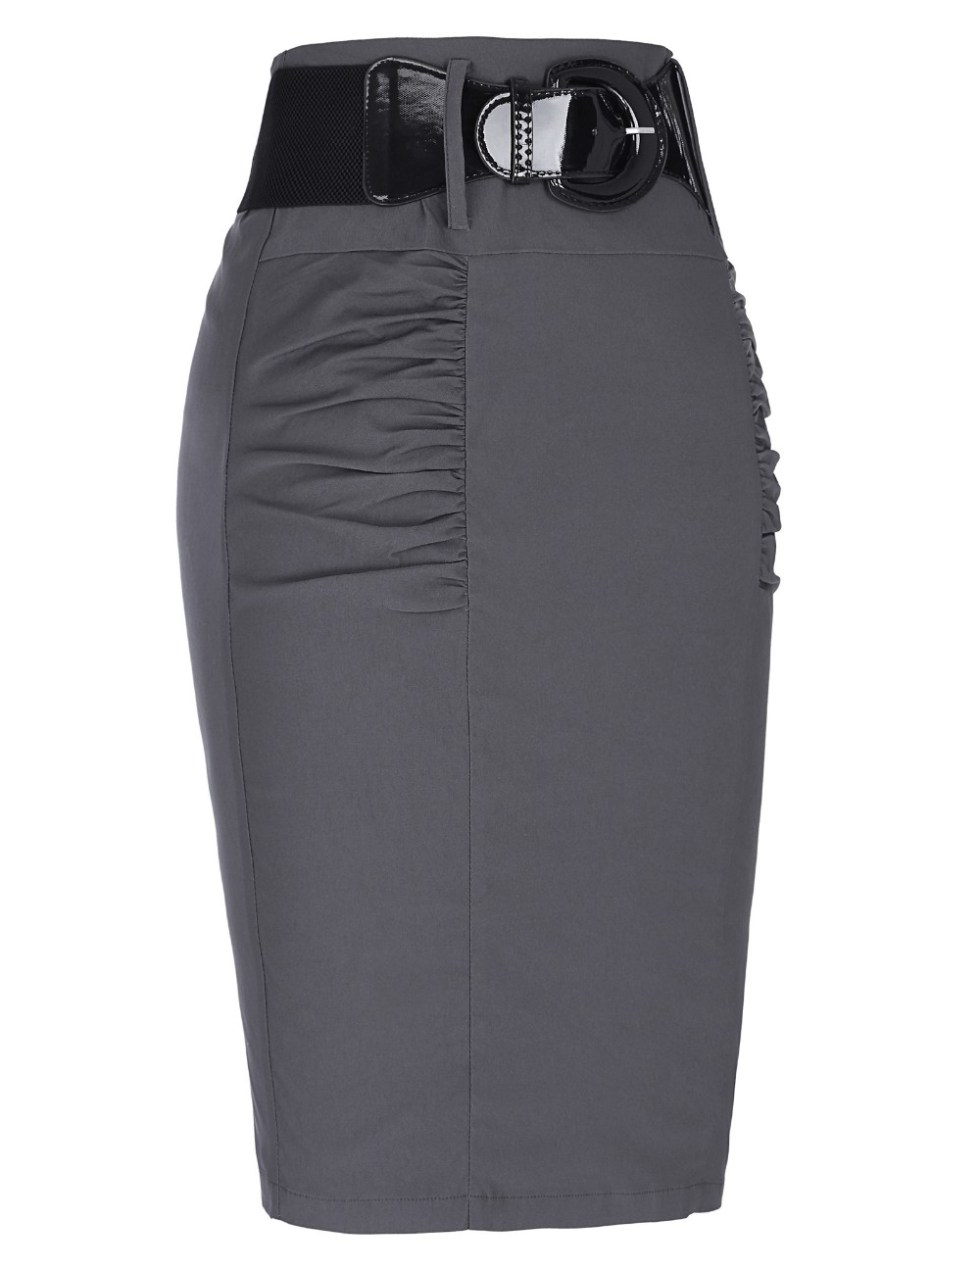 2017 New Sexy Pencil Skirts Womens Business Work Office Skirt With Belt High Waist Elastic Casual Bodycon Slim Fit Ladies Skirts